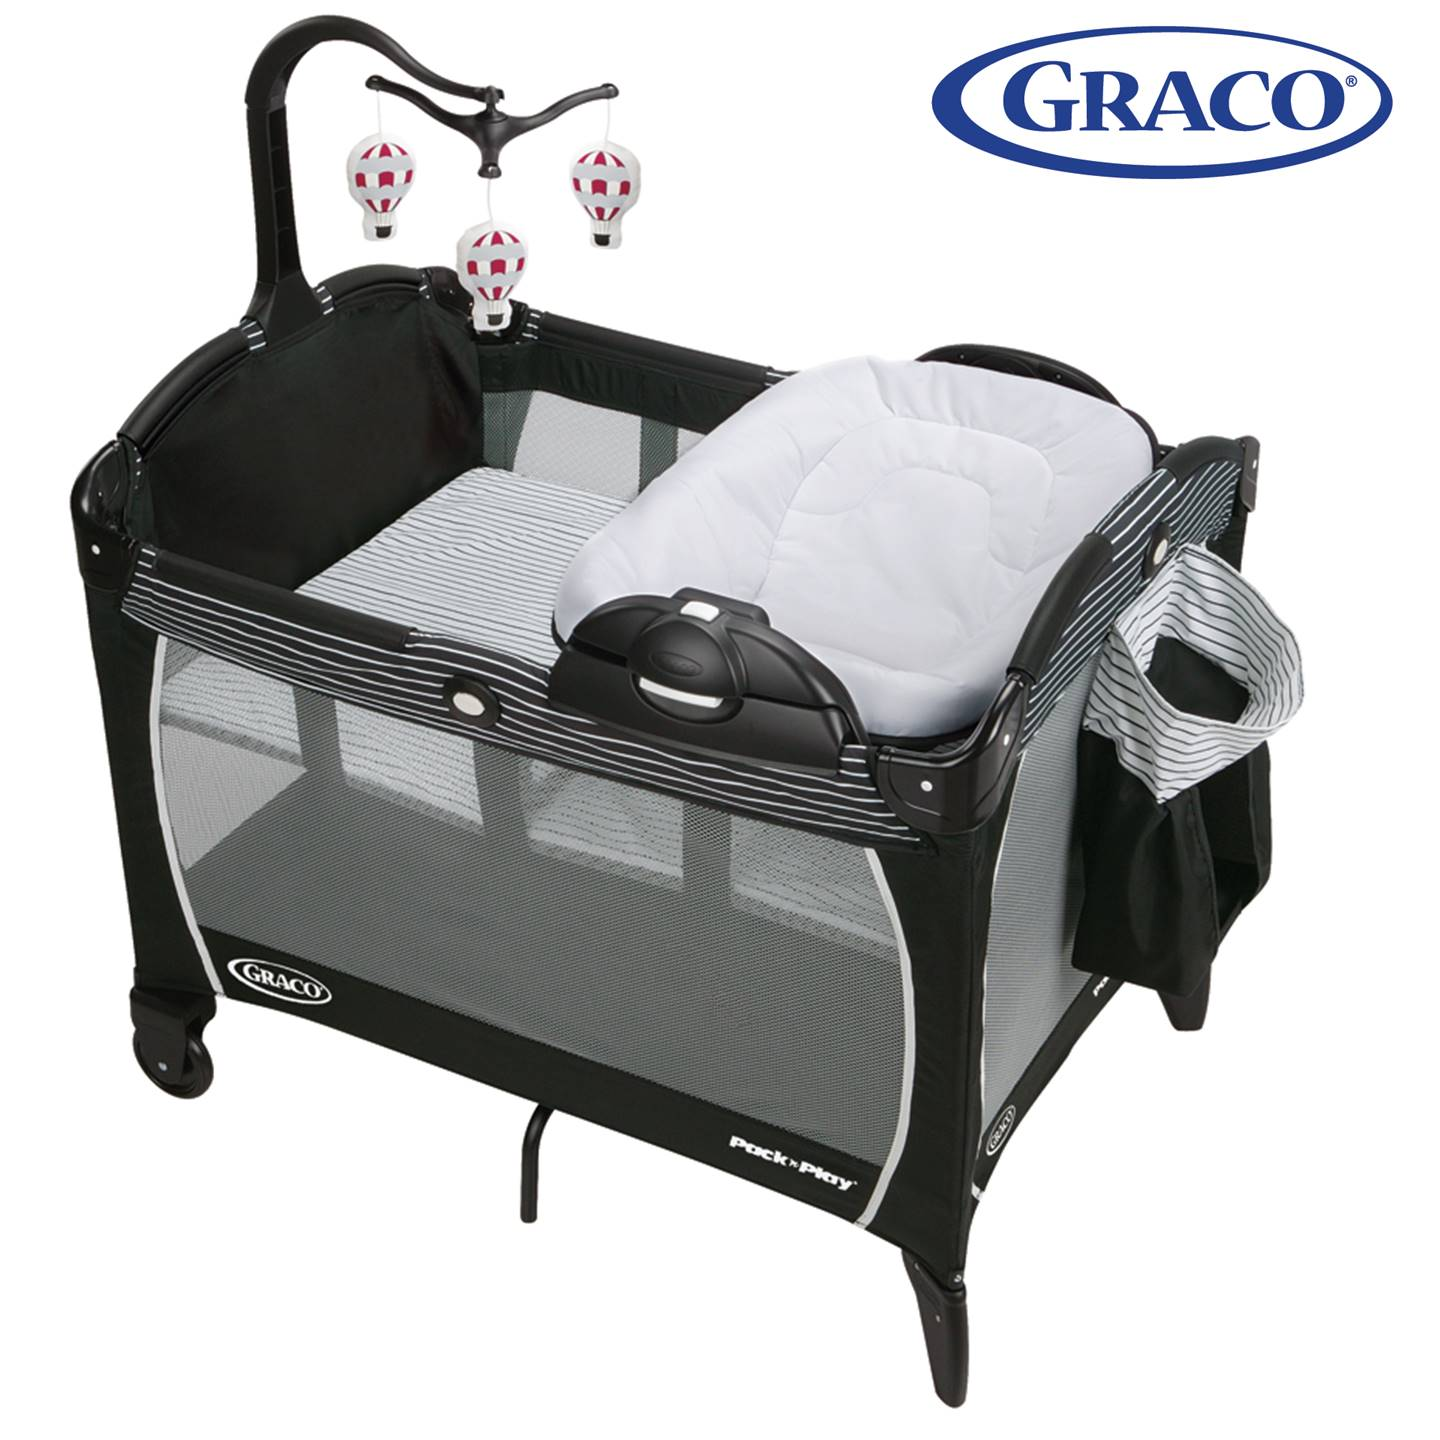 GR4409D50SDI00 Graco Pnp Portable Napper Changer-Studio (1)